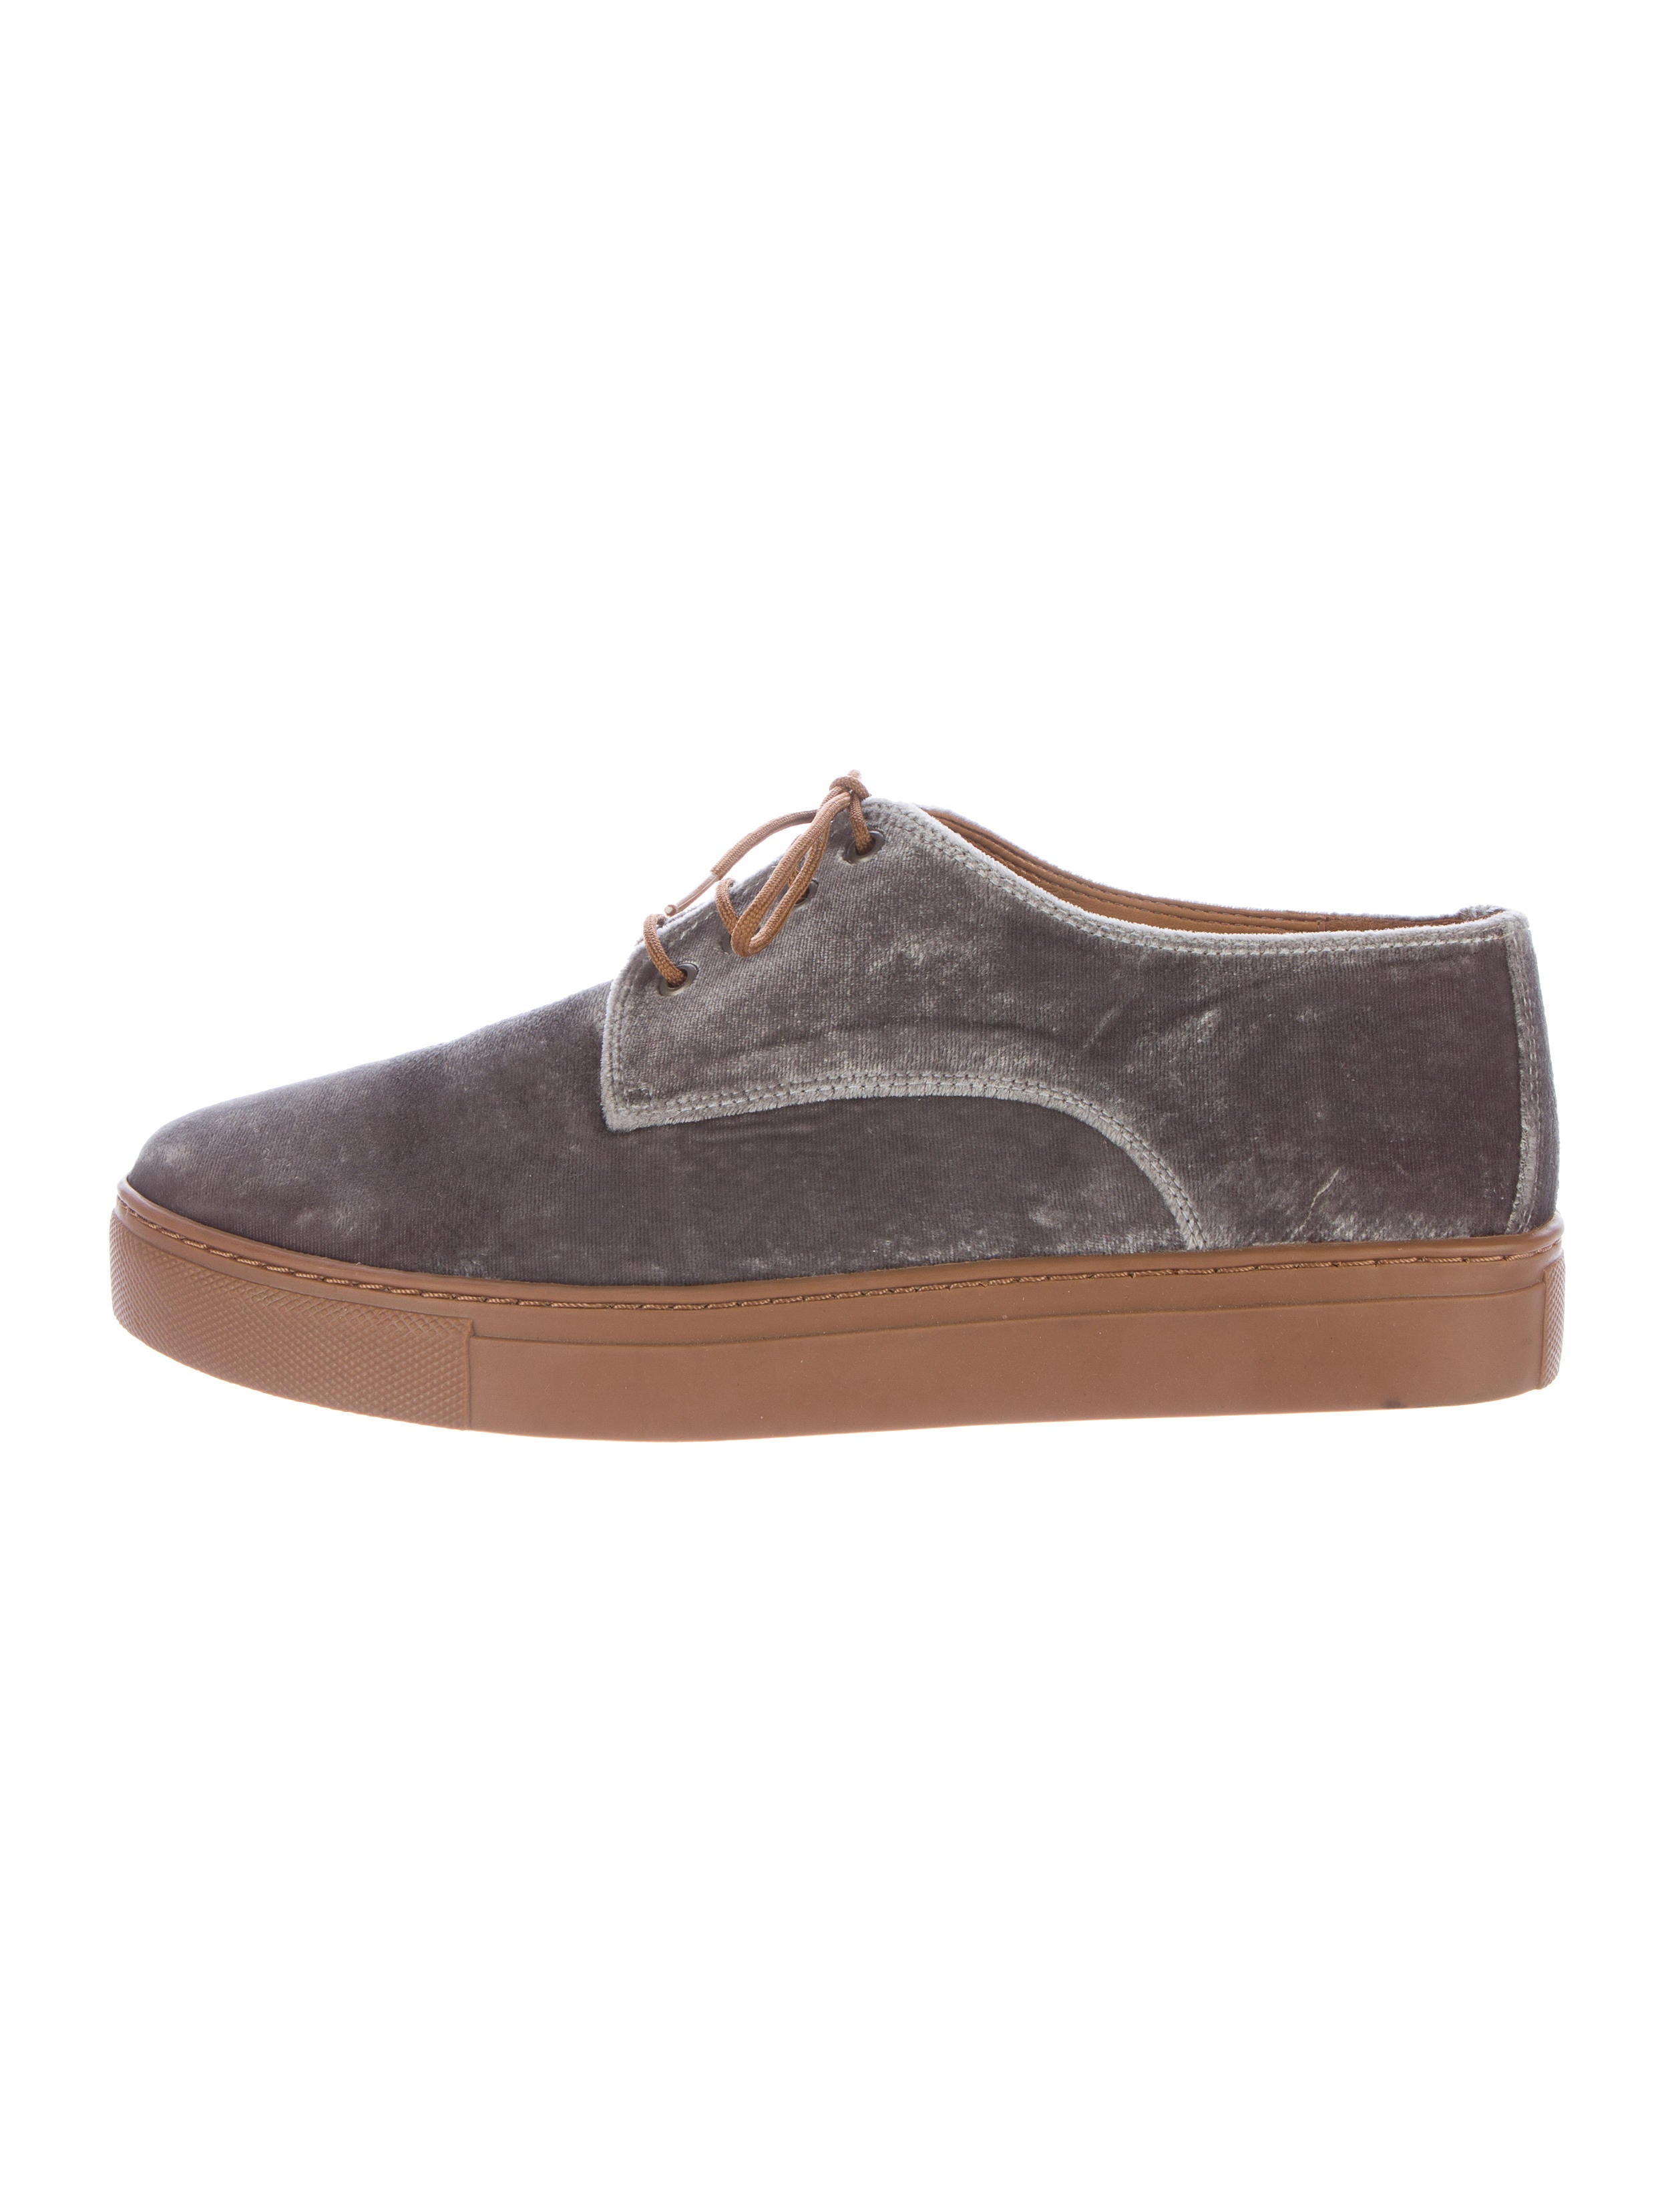 sale lowest price Clover Canyon Velvet Low-Top Sneakers clearance latest collections 1PyU53c